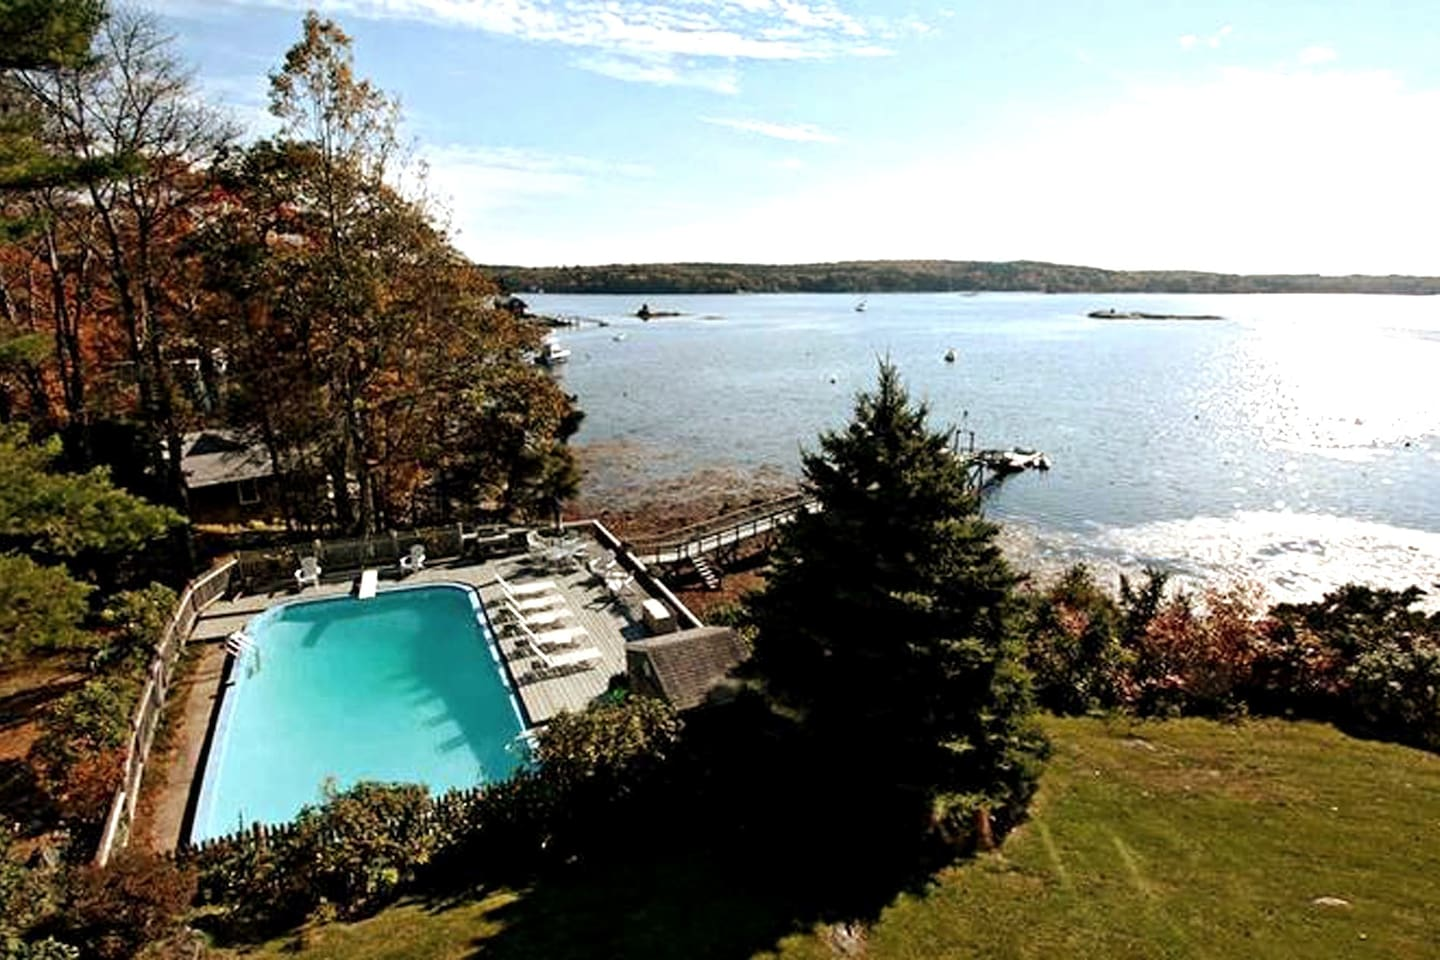 Brand new Inground pool and  private dock located on beautiful Linekin Bay